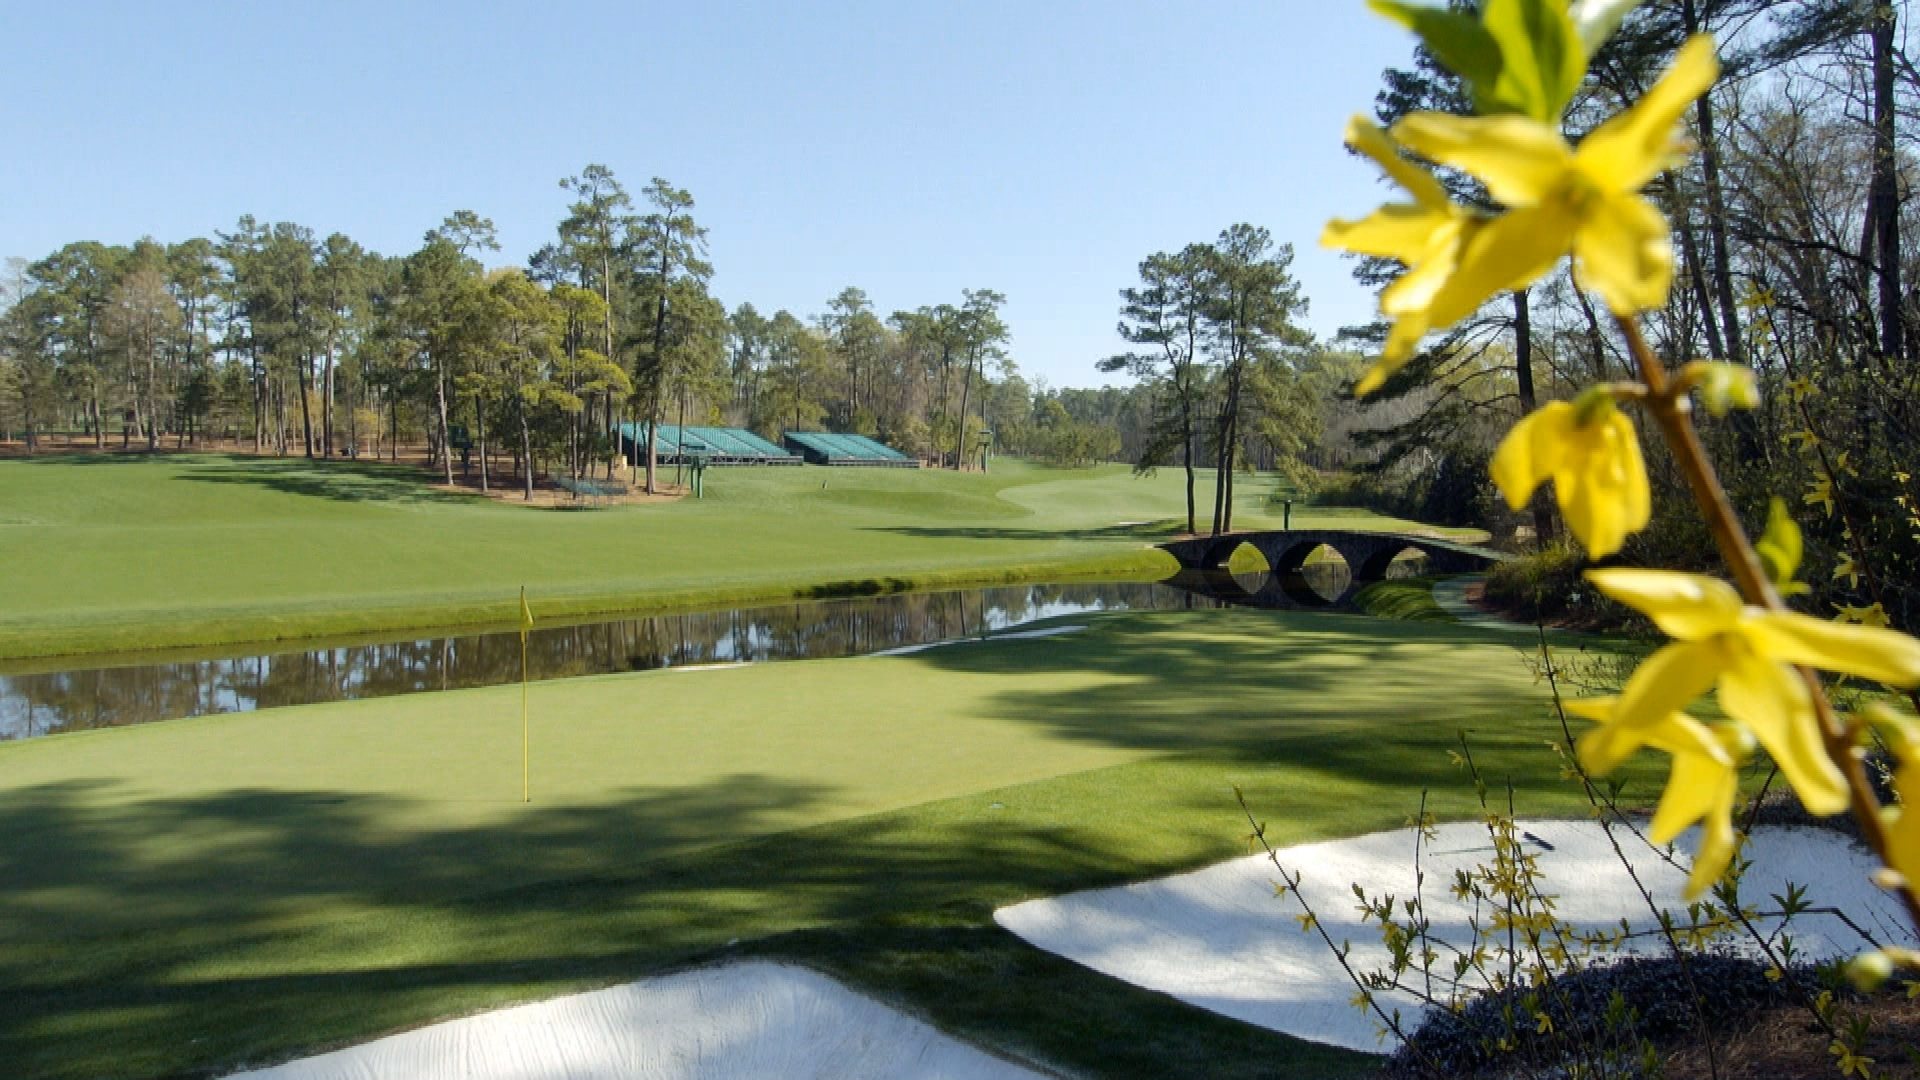 Wapking 3d Wallpaper Download Augusta National Background Wallpaper Gallery